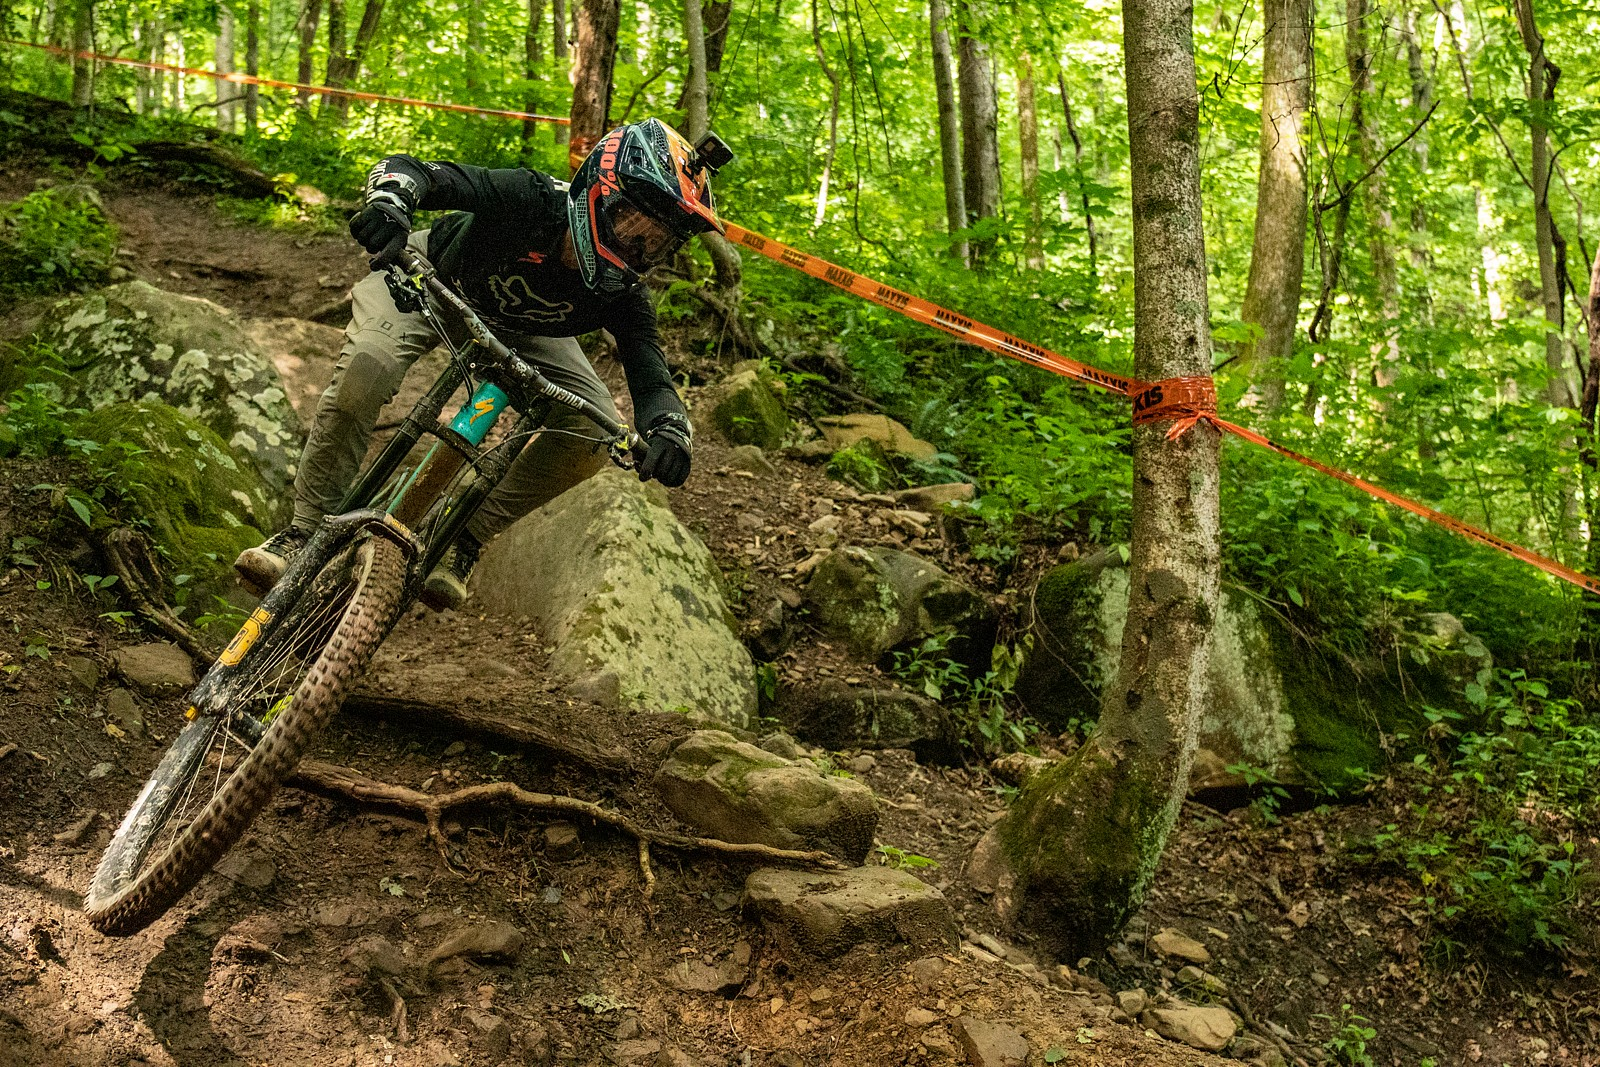 Chris Grice - JackRice - Mountain Biking Pictures - Vital MTB